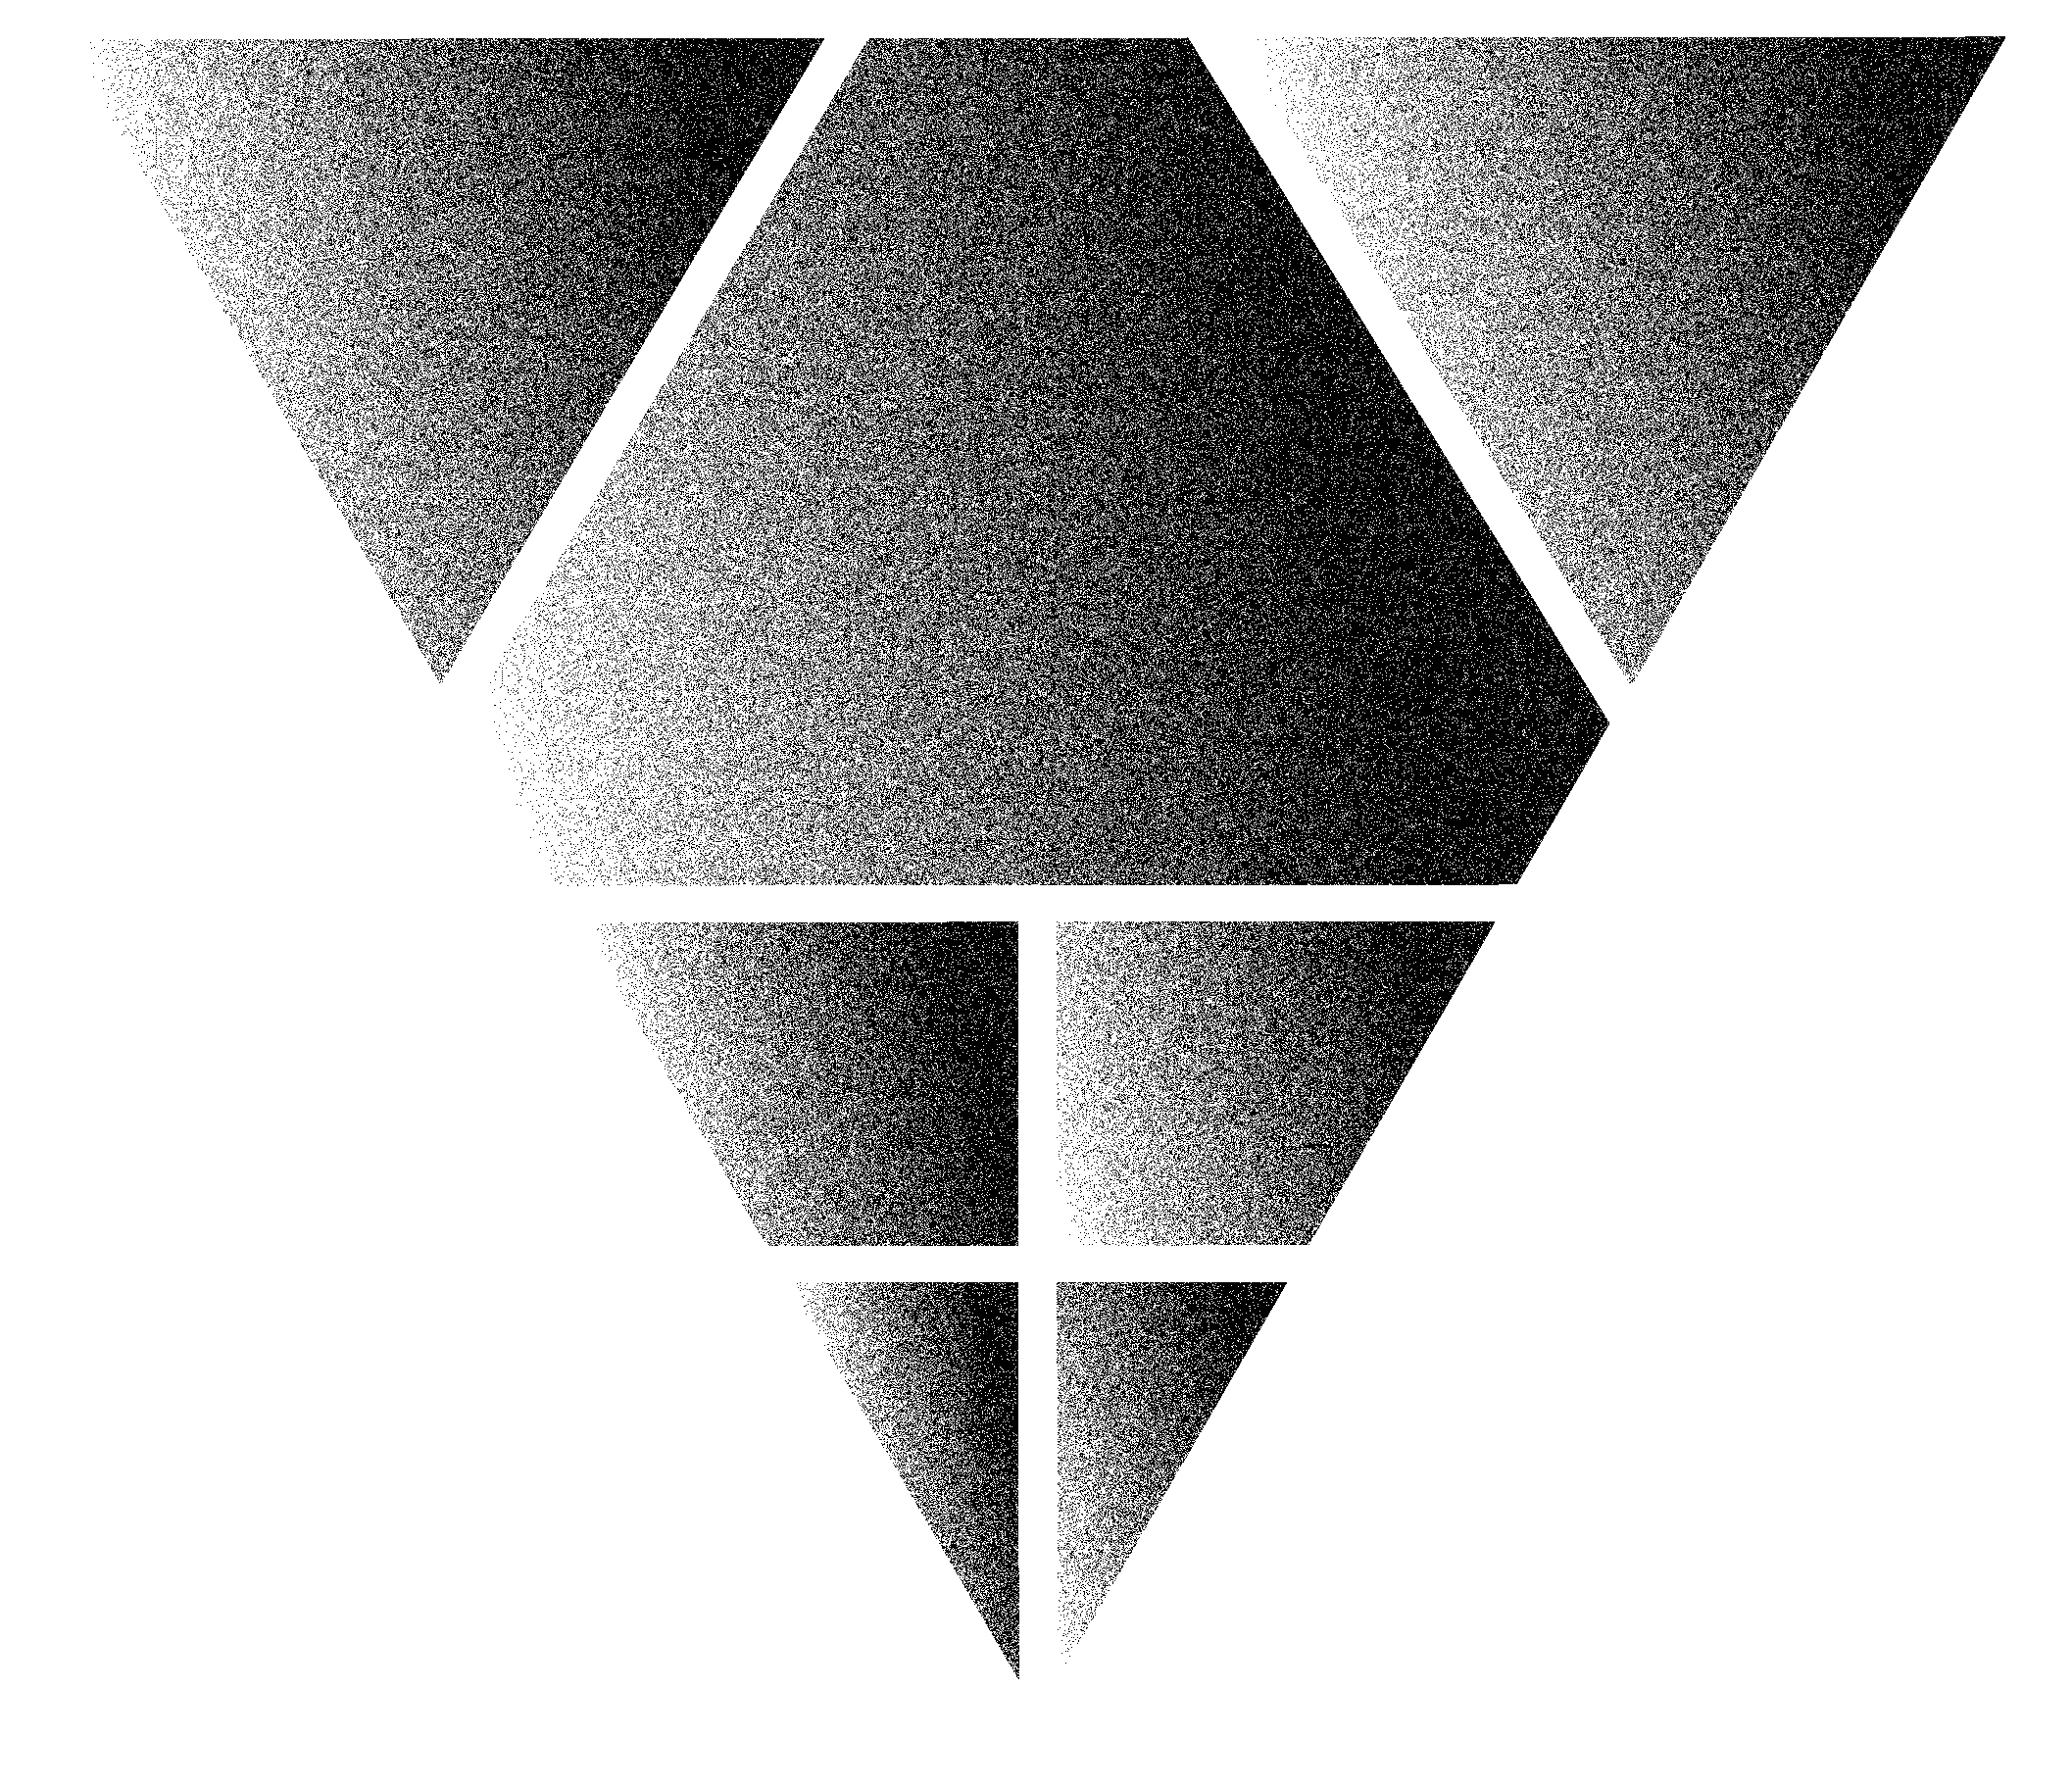 Black and White Grainey Upside Down Pyramid Face with Triangular Patterns overlayed in White